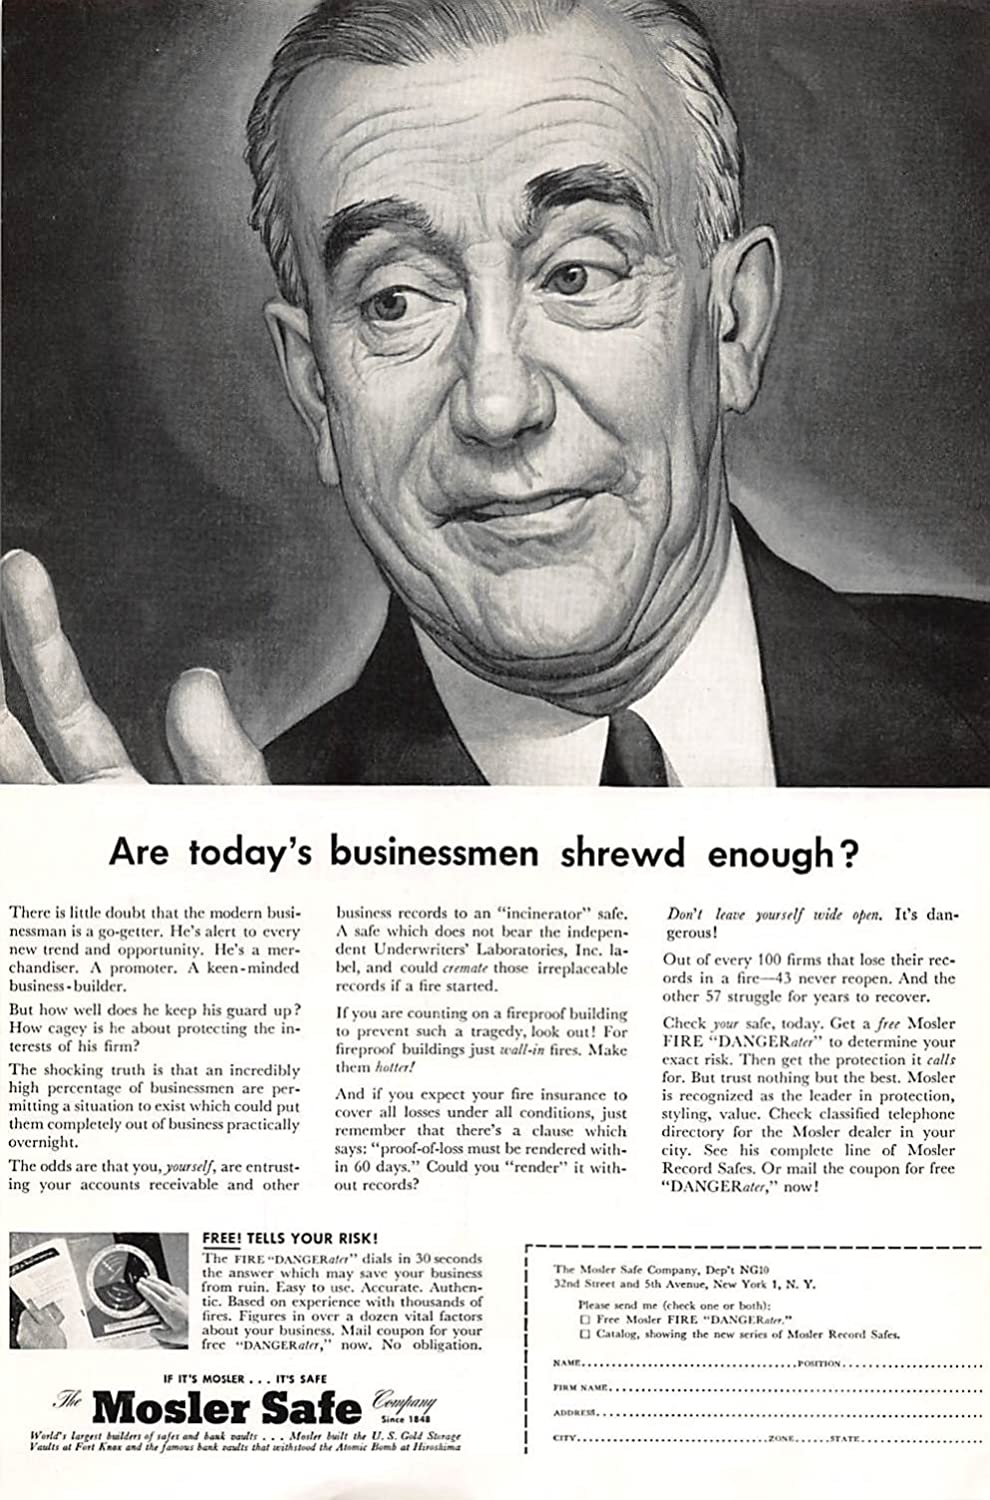 Amazon com: Print Ad 1954 Mosler Safe Are today's businessmen shrewd